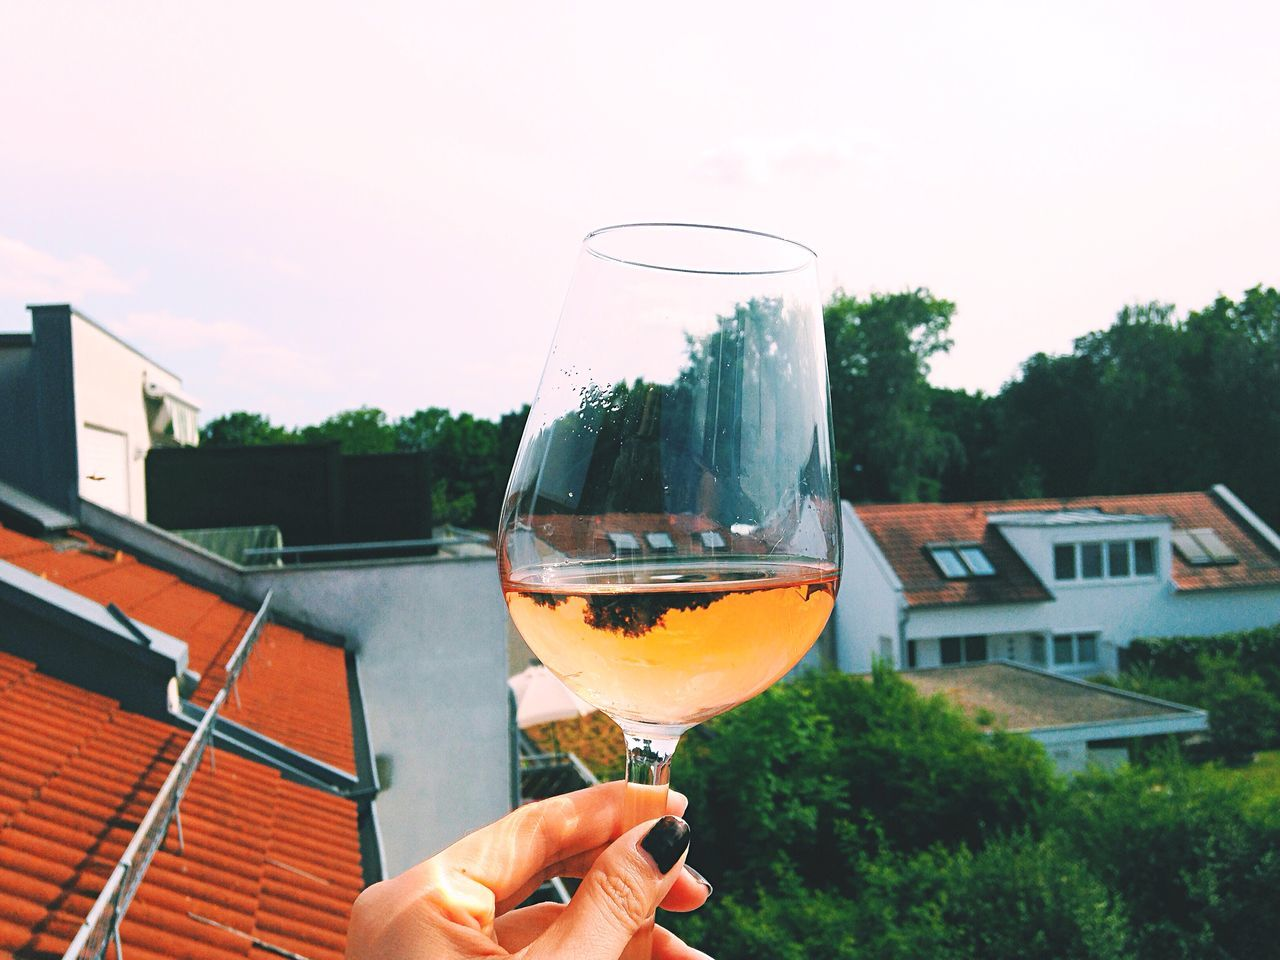 Roof A Taste Of Life Wine Summer Enjoying Life Friends Pink Urban Lifestyle Deceptively Simple Capture The Moment 43 Golden Moments Wine Moments